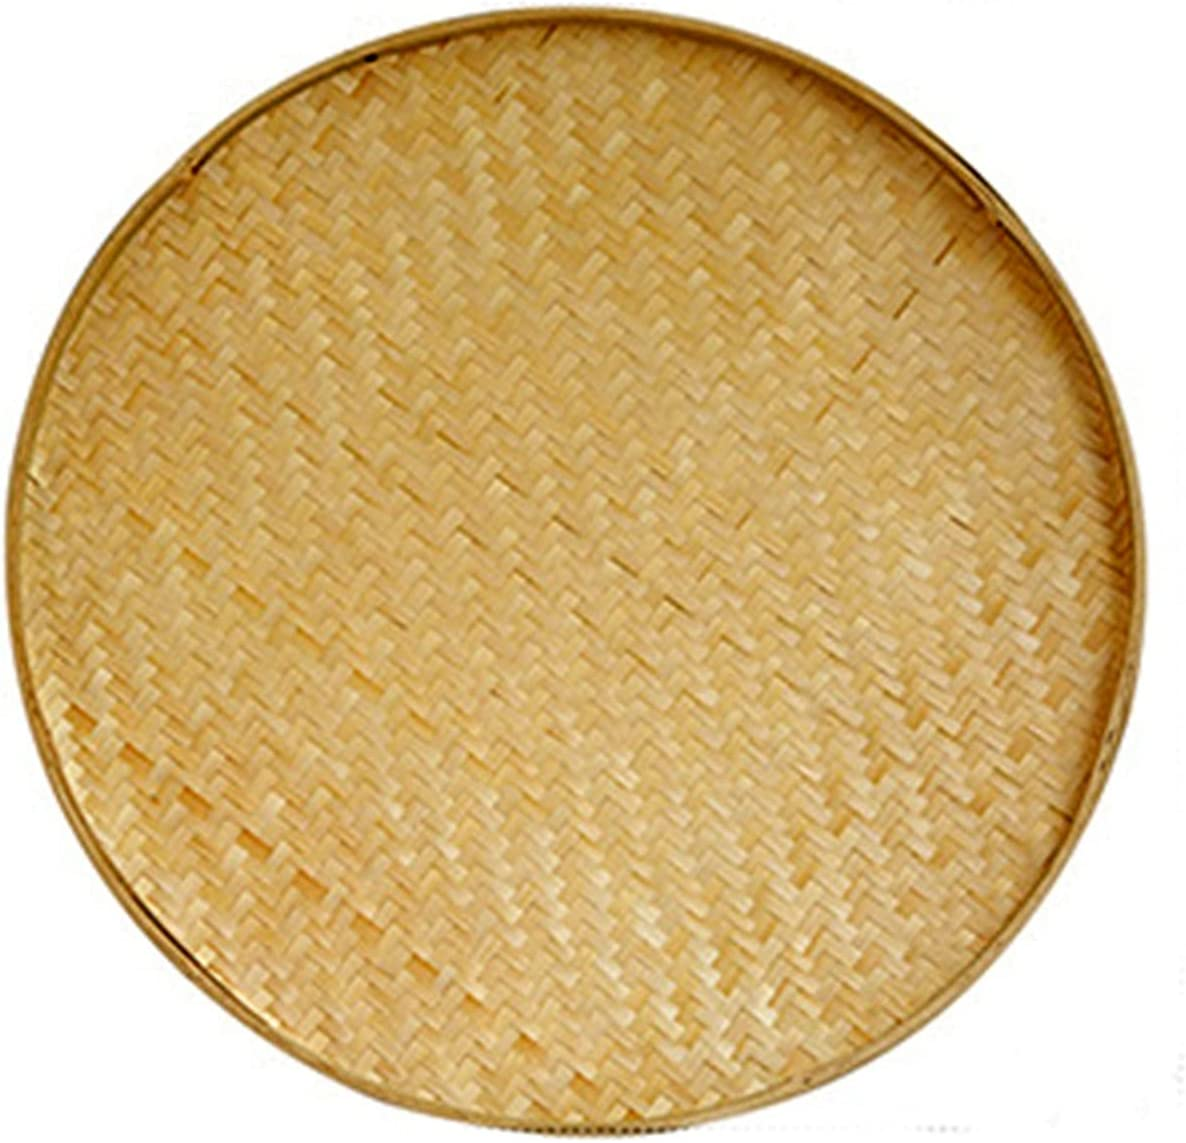 Bamboo Woven Sieve Painting And Fashionable Decoration Max 83% OFF Air- Tray Household